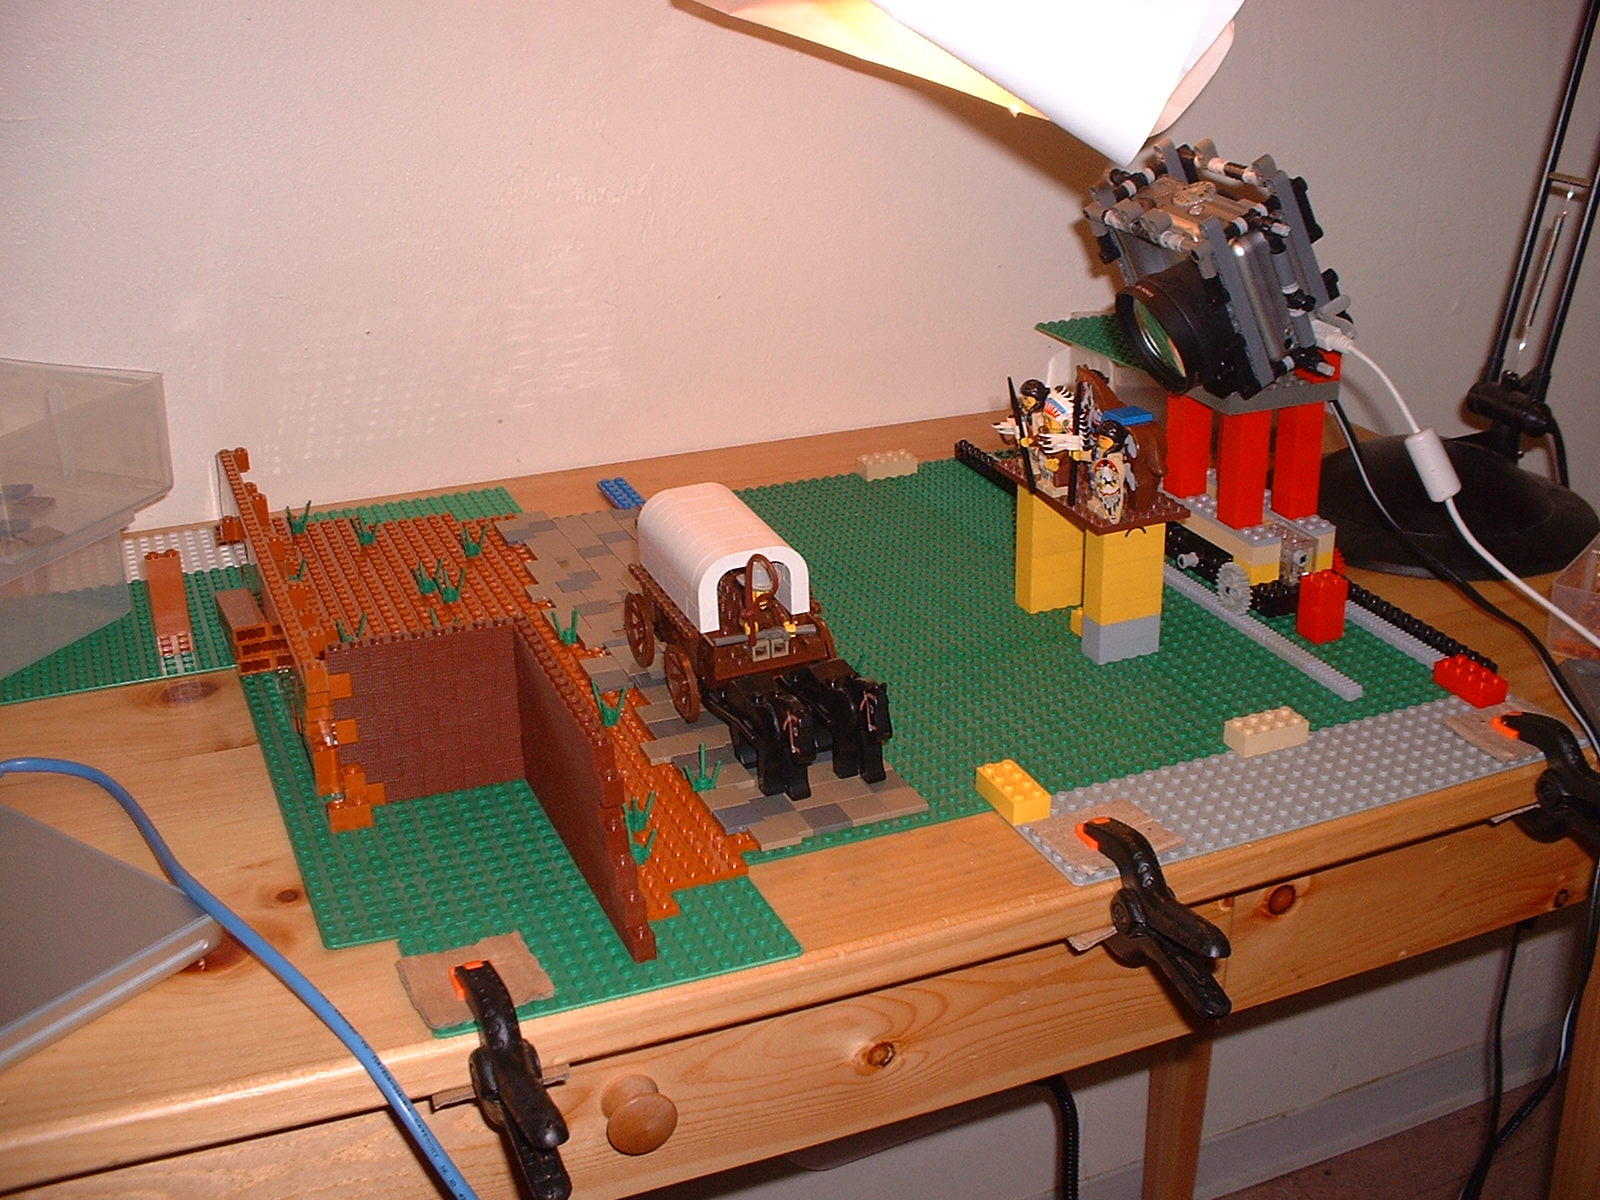 The westward expansion shot required the camera to be on a custom LEGO track to allow for lateral movement